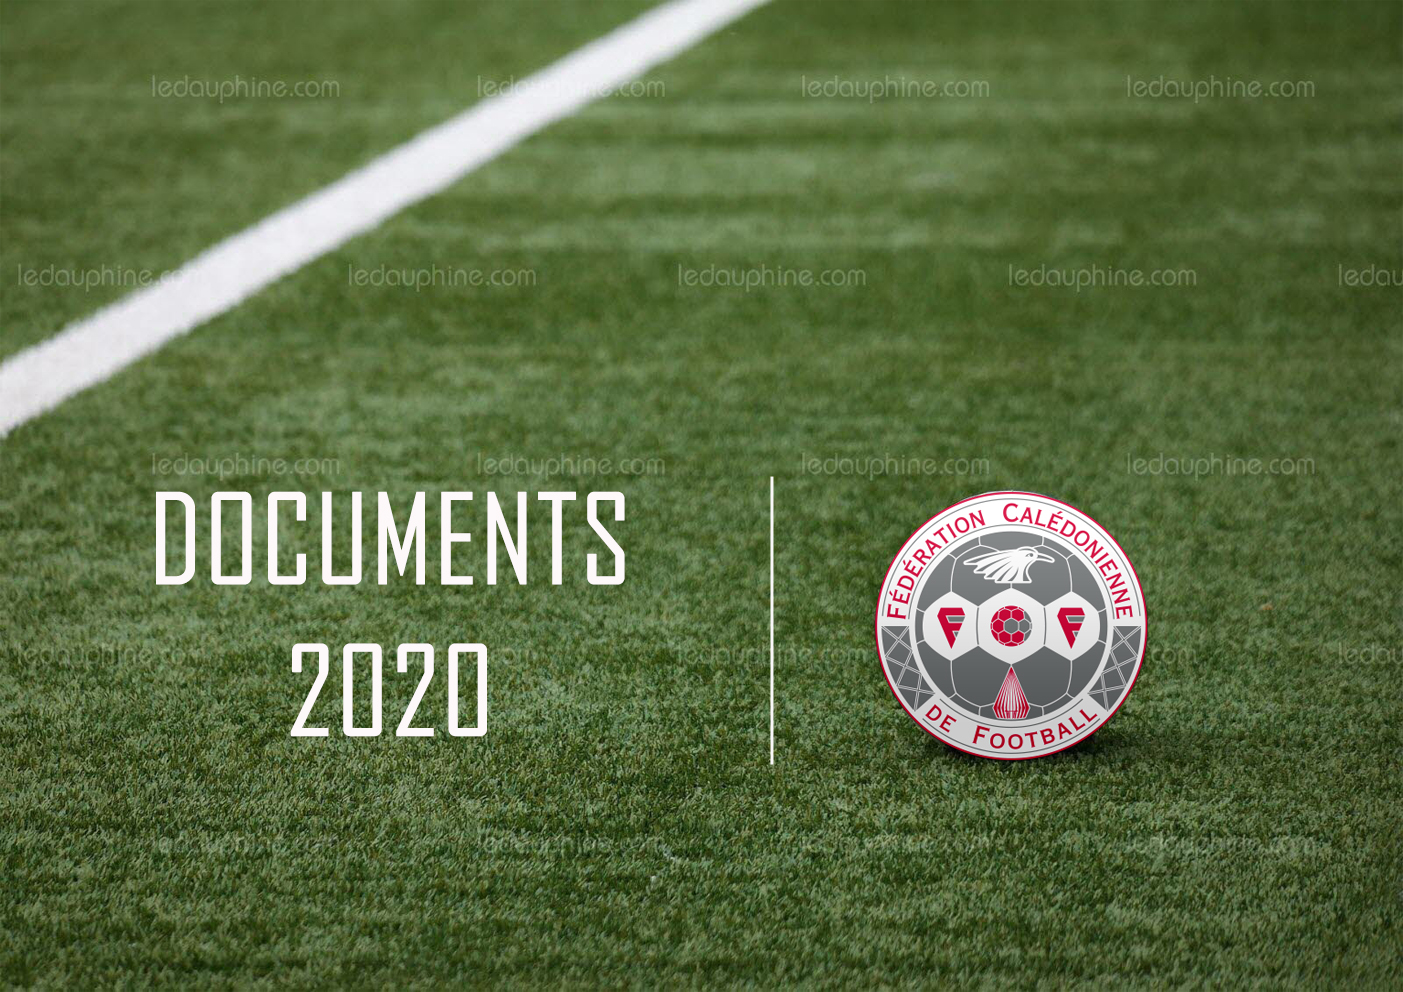 DOCUMENTS 2020